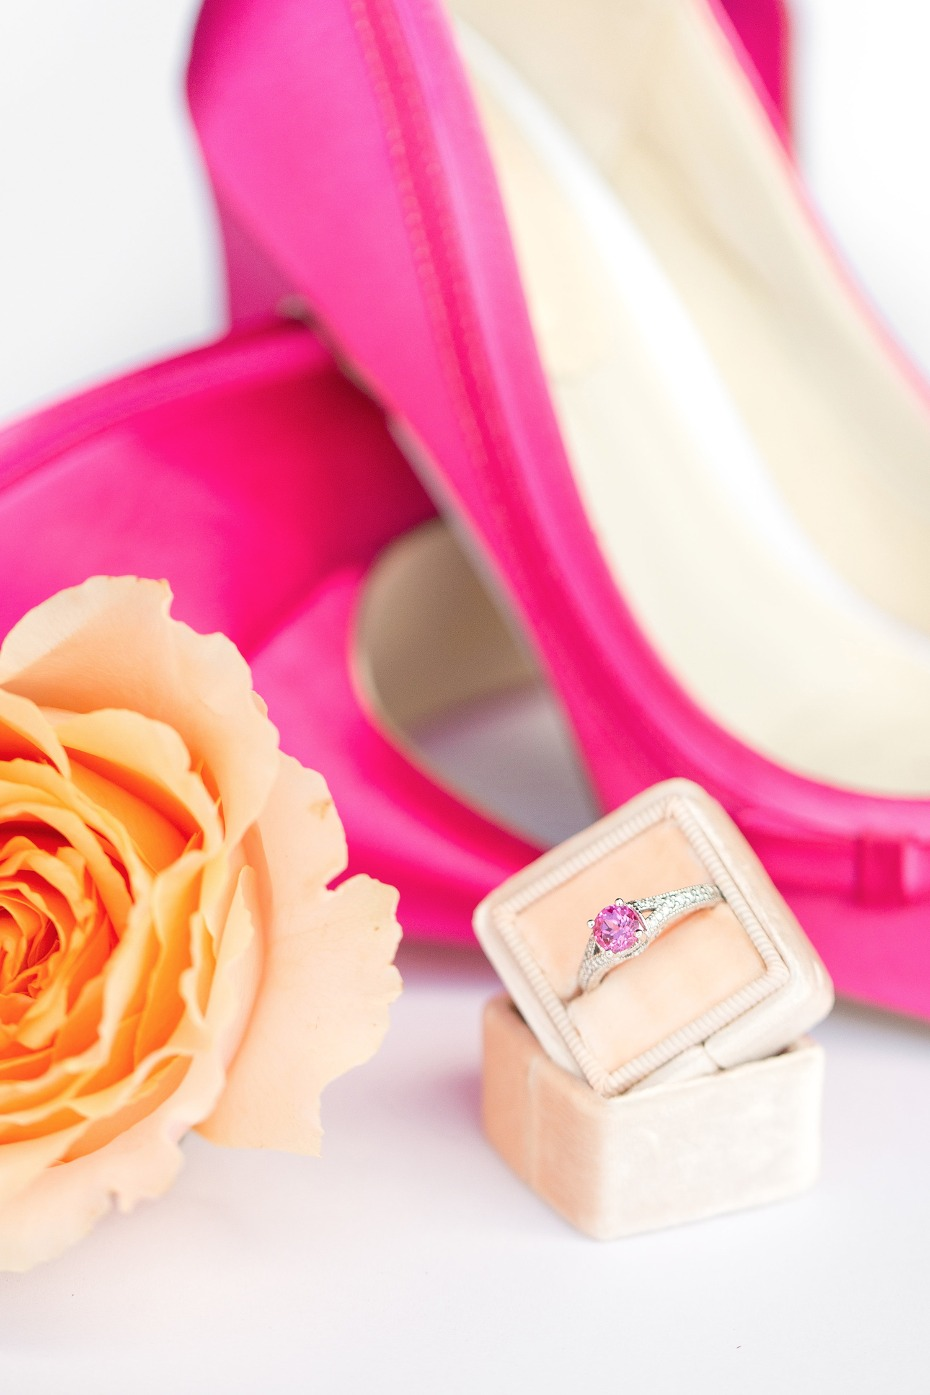 Hot pink shoes and engagement ring